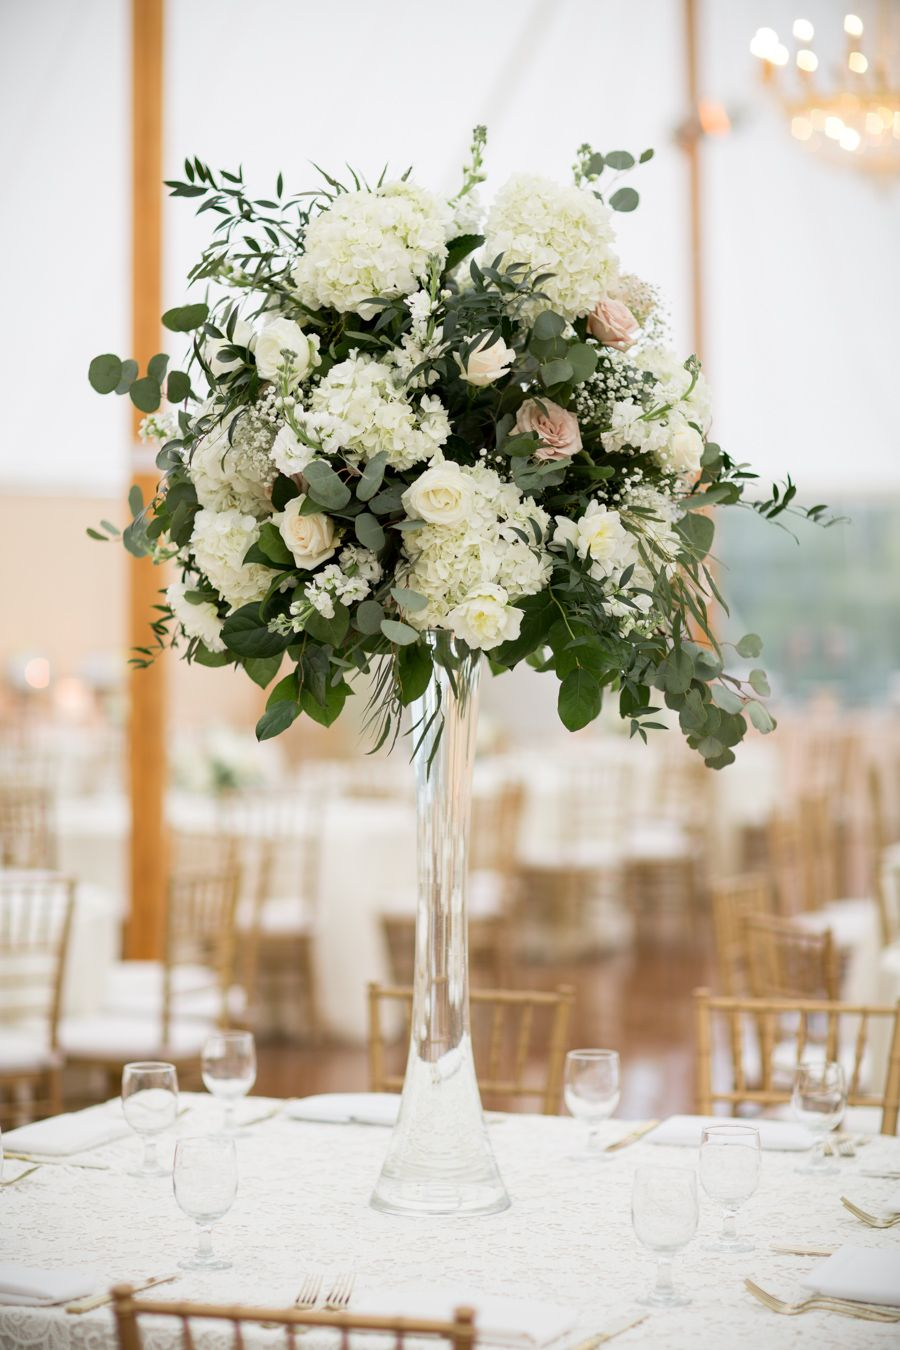 Tall eucalyptus rose and hydrangea centerpieces